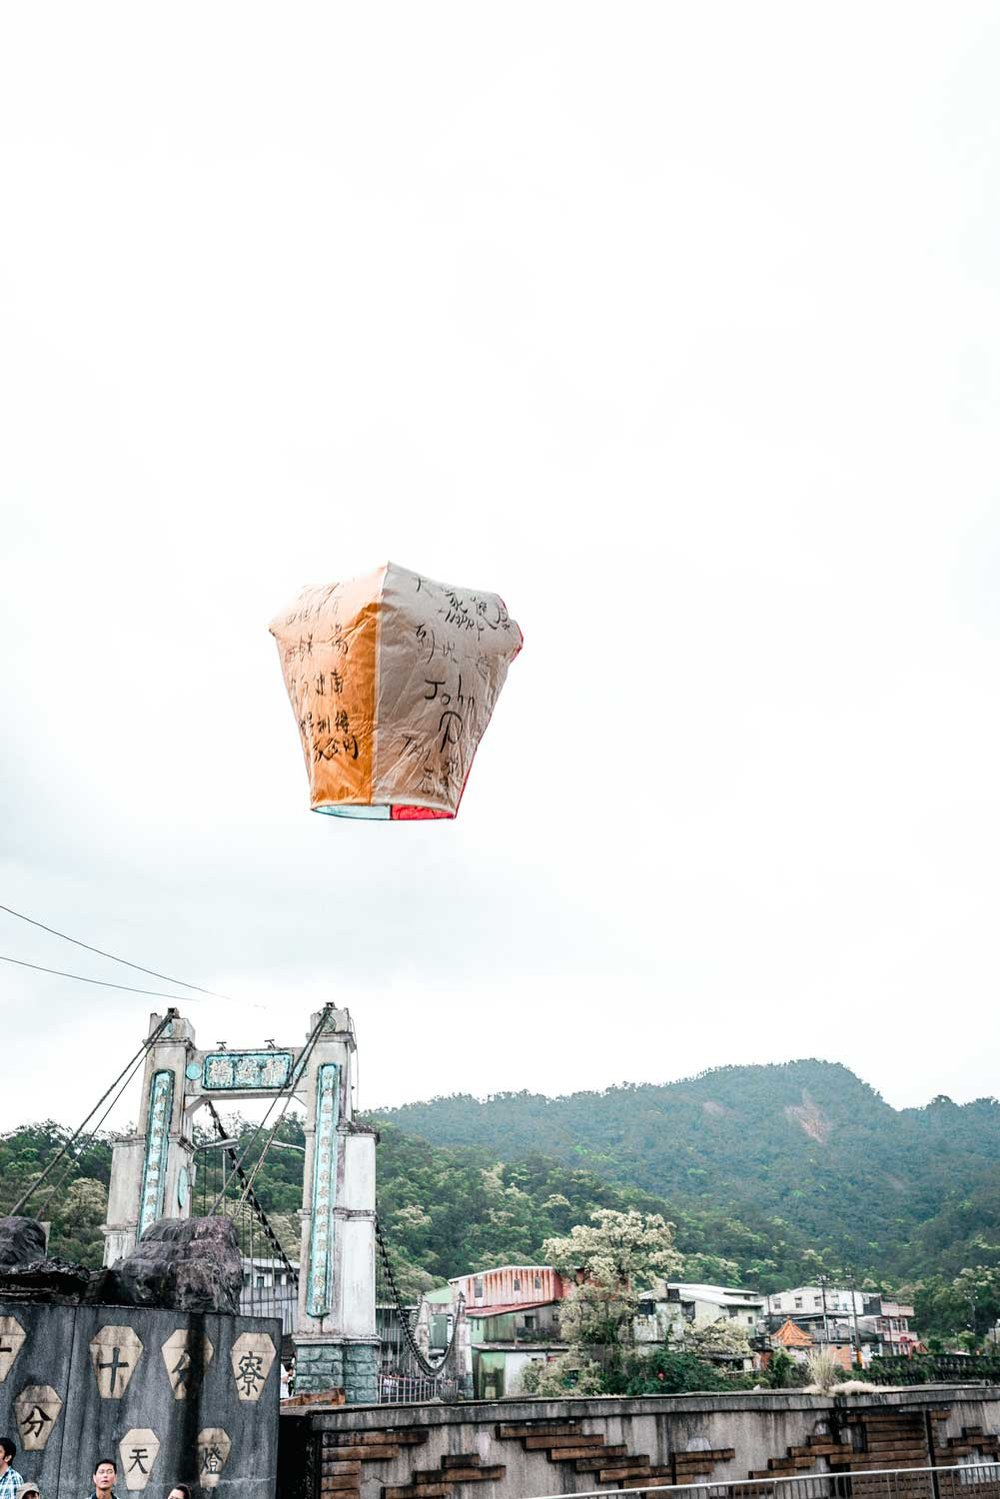 A lantern floats up to the sky